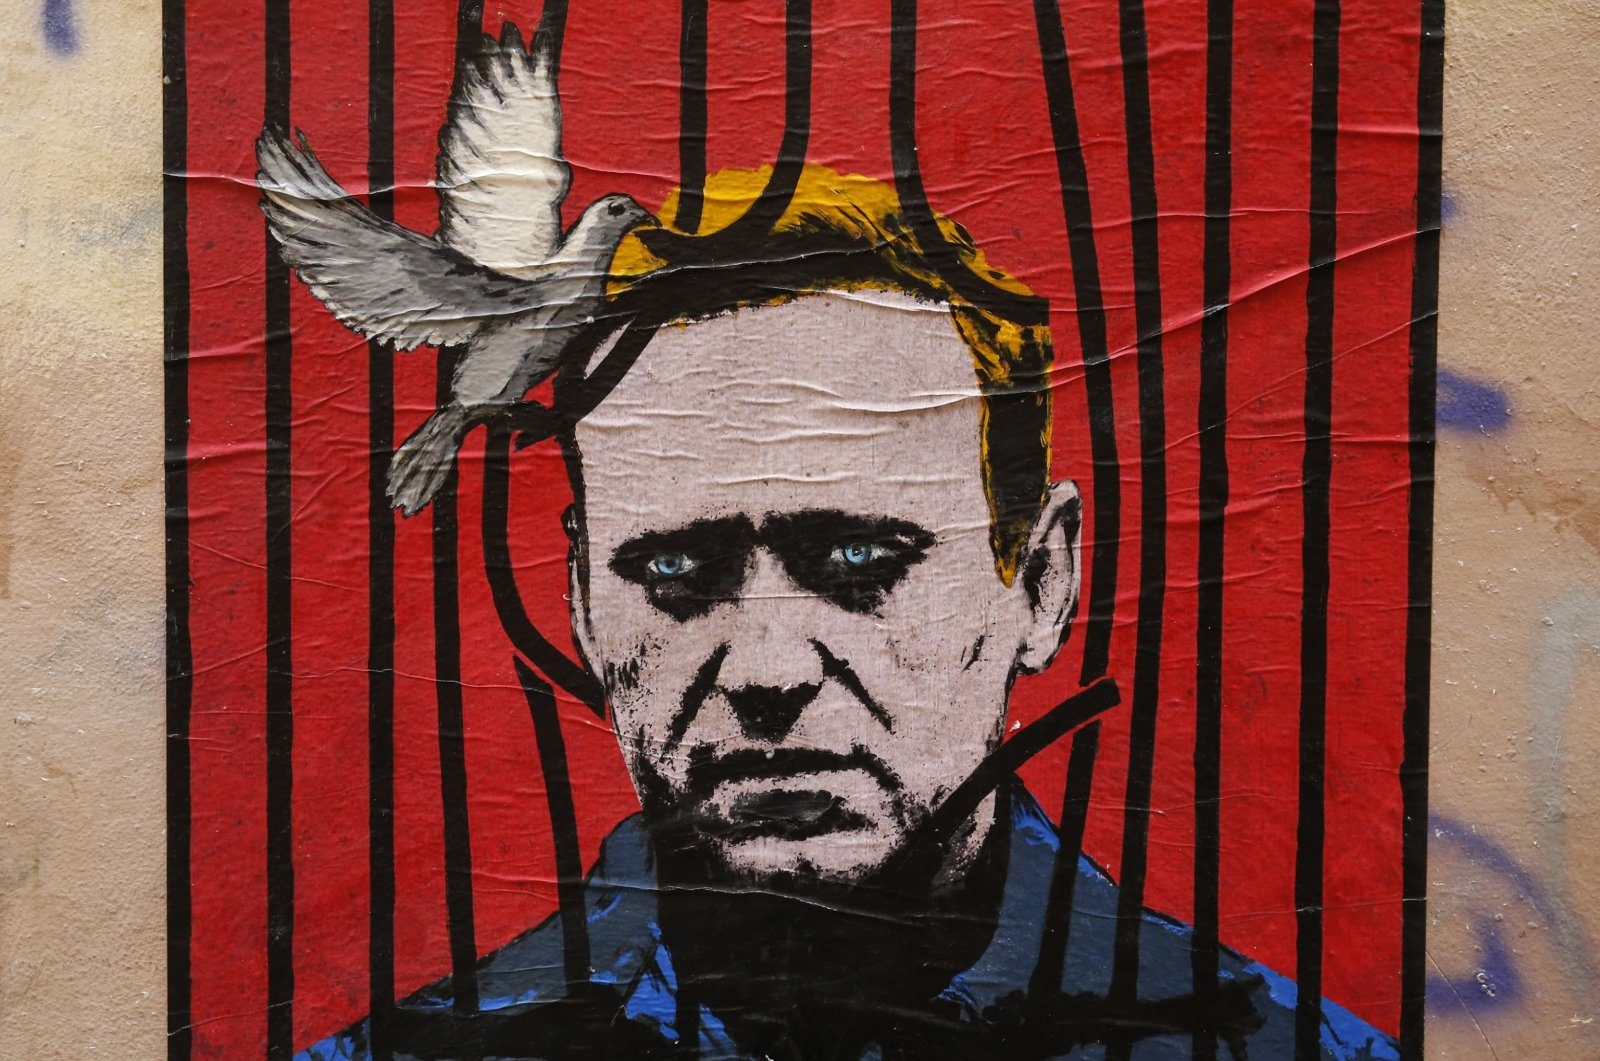 A view of a large poster depicting Russian opposition leader Alexei Navalny behind bars with a dove freeing him from detention, by an unidentified street artist known as Harry Greb, in downtown Rome, Italy, Jan. 25, 2021. (EPA Photo)